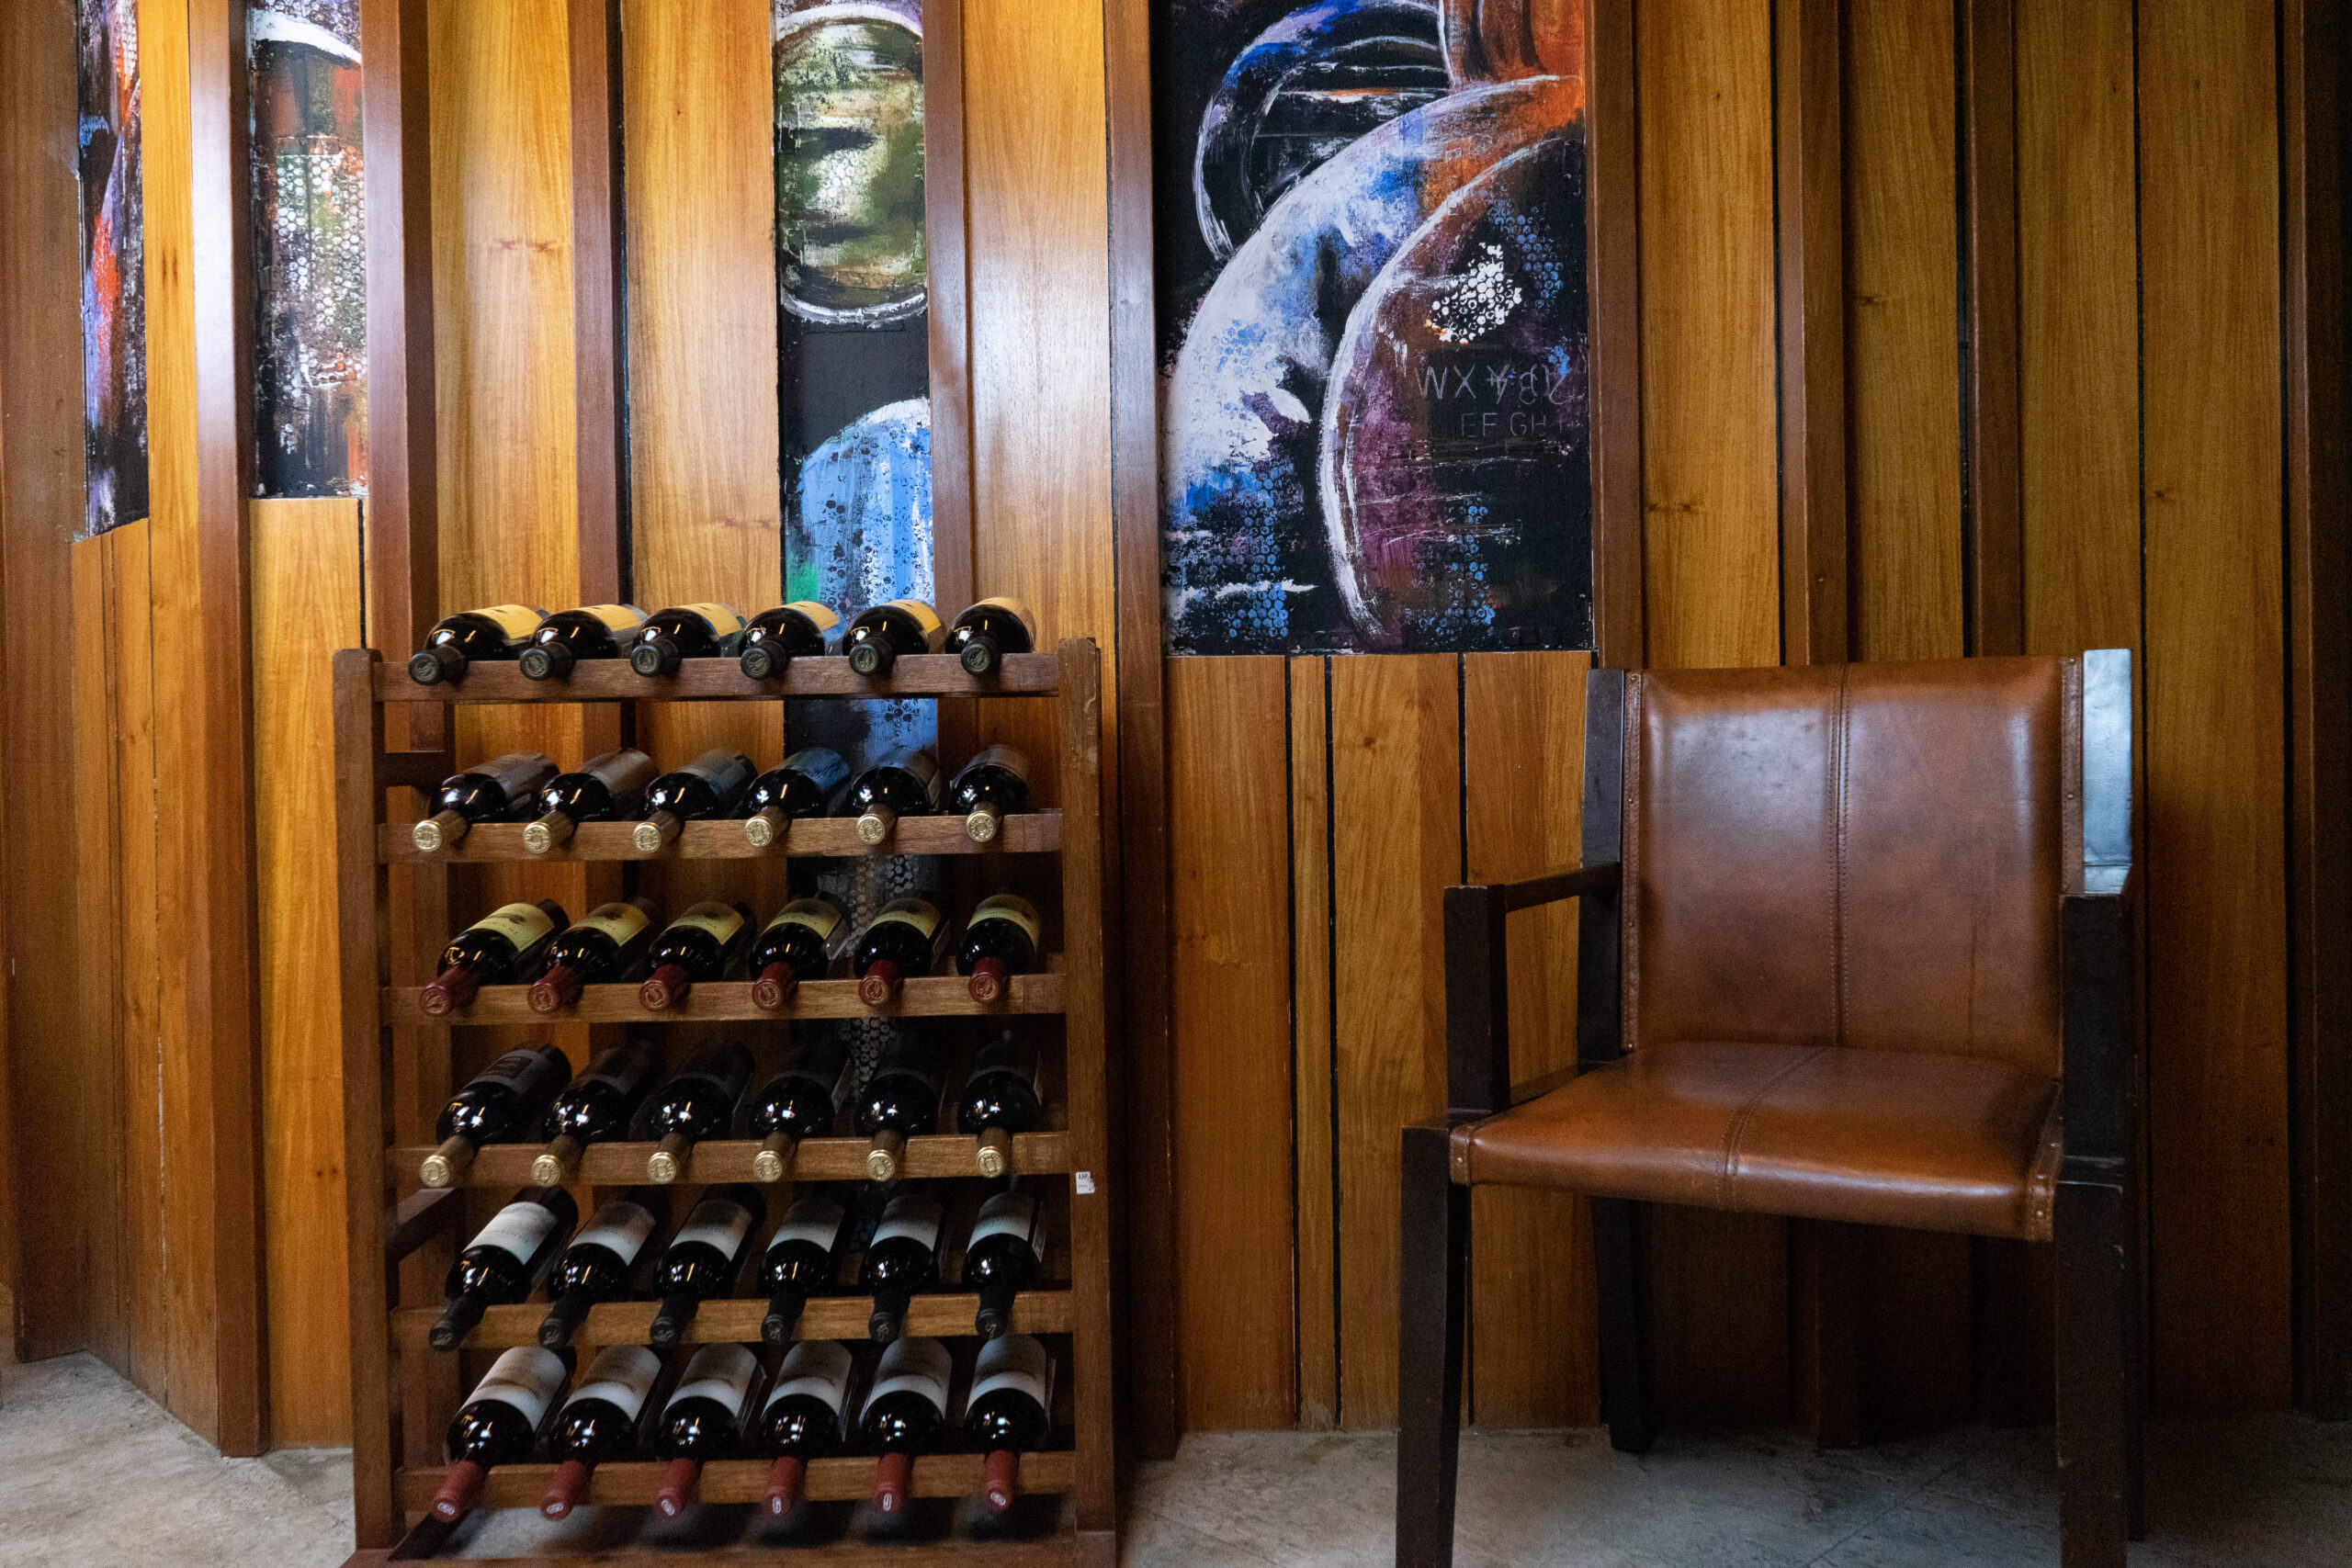 Wines in the Rack | The Wine Club Philippines